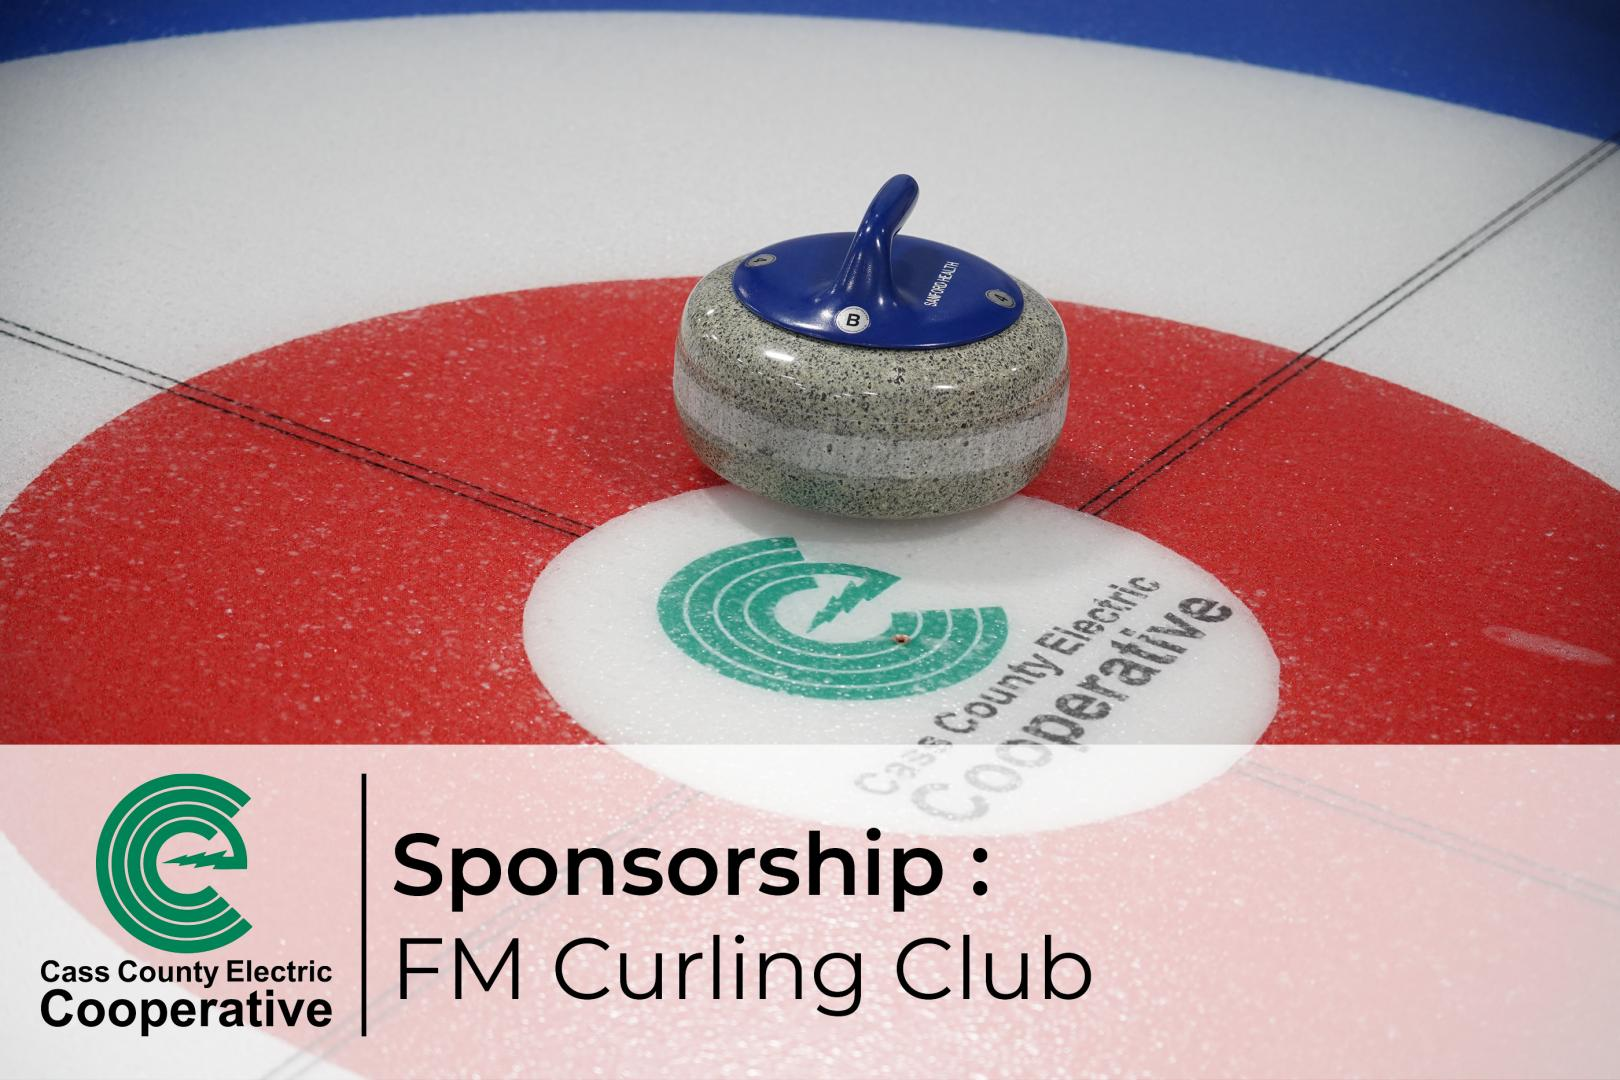 Sponsorship at FM Curling Club